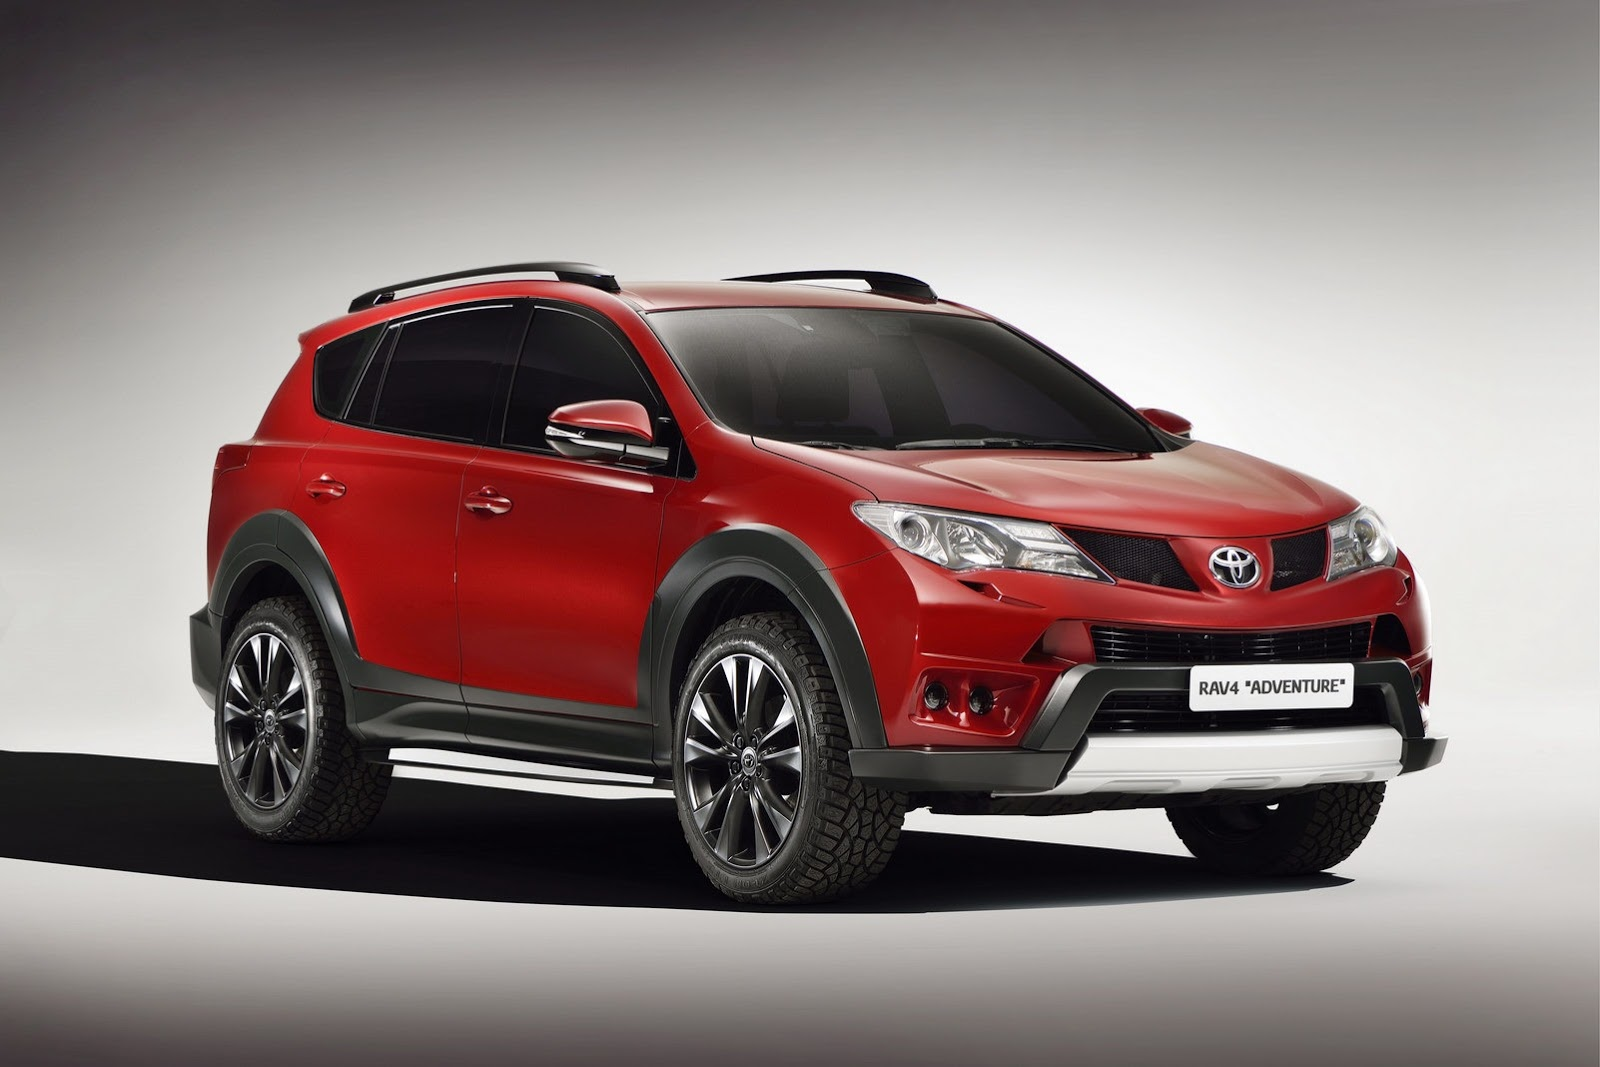 toyota gets tough luxurious with new rav4 concepts. Black Bedroom Furniture Sets. Home Design Ideas